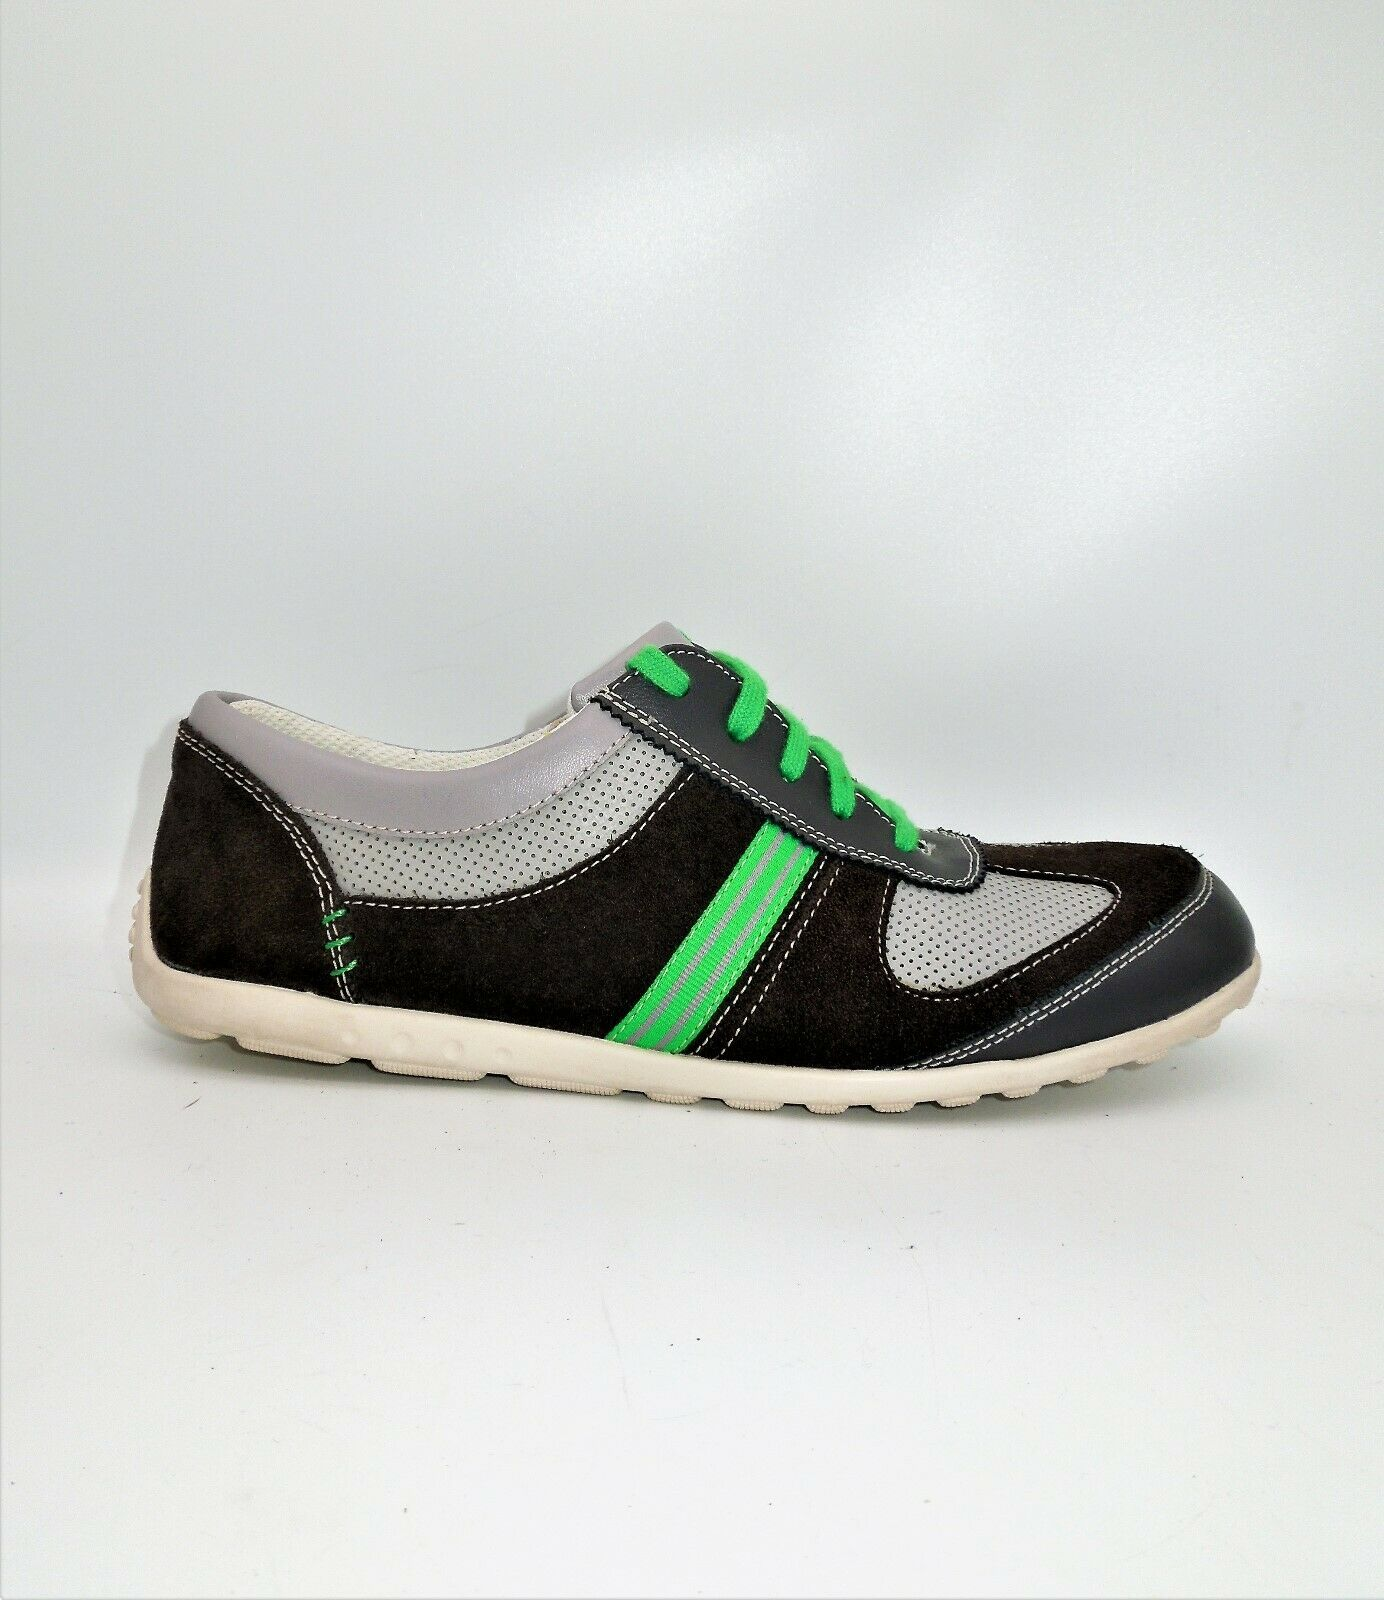 CLARKS Mens Size 6.5UK Casual Sneakers Leather/TextileGrey/Green Green Laces EUC